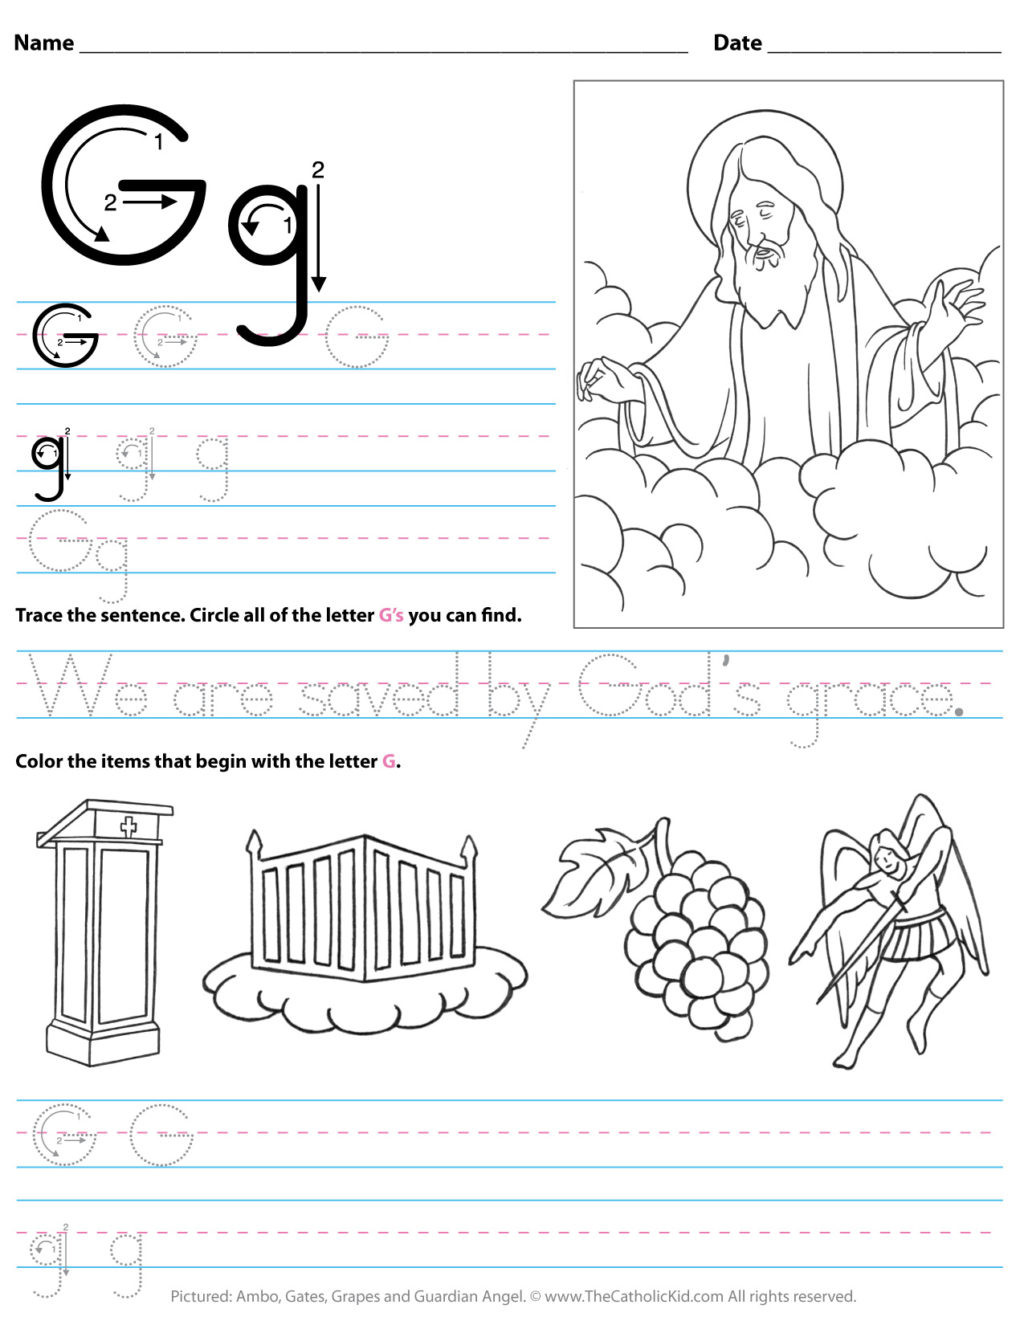 Preschool Letter G Worksheets Worksheet Working Sheets forlers Image Inspirations